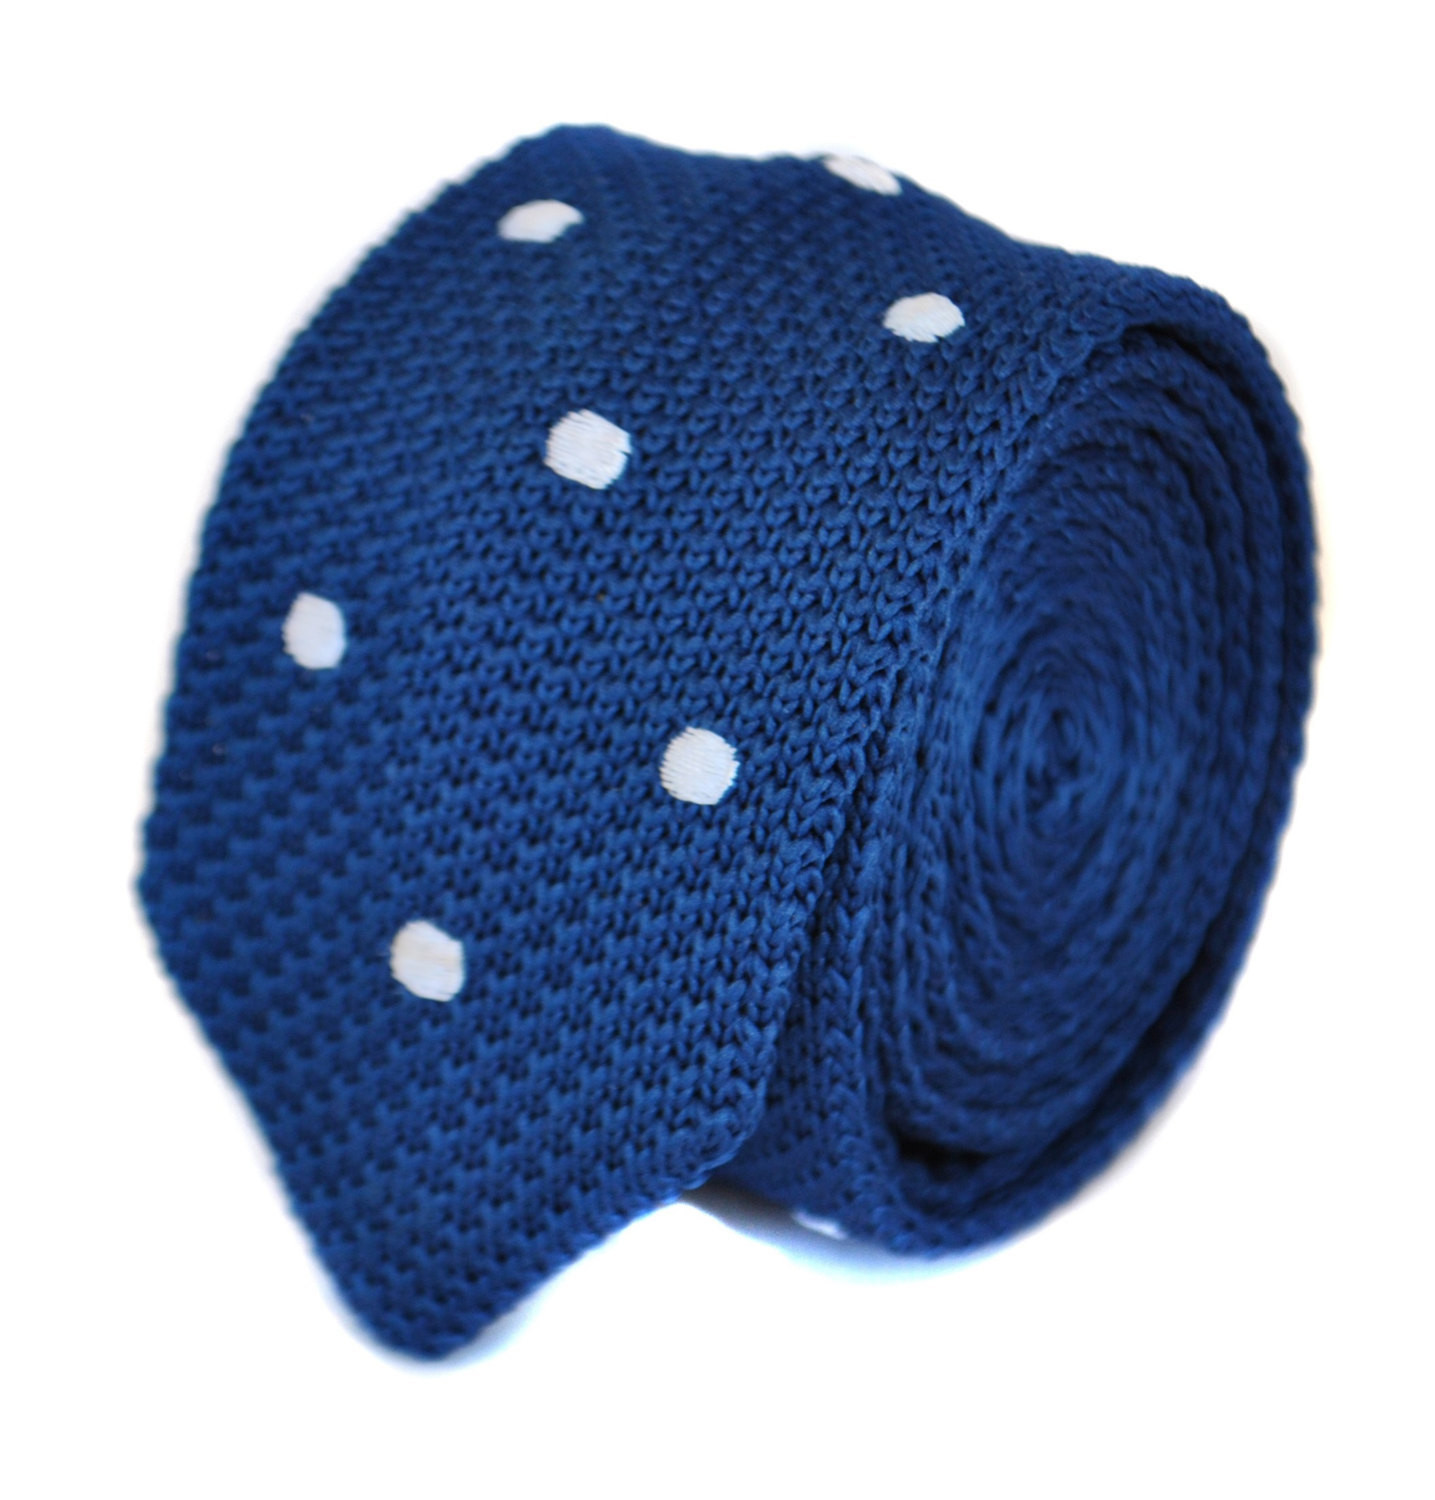 skinny navy blue knitted tie with white polka spots by Frederick Thomas FT1861